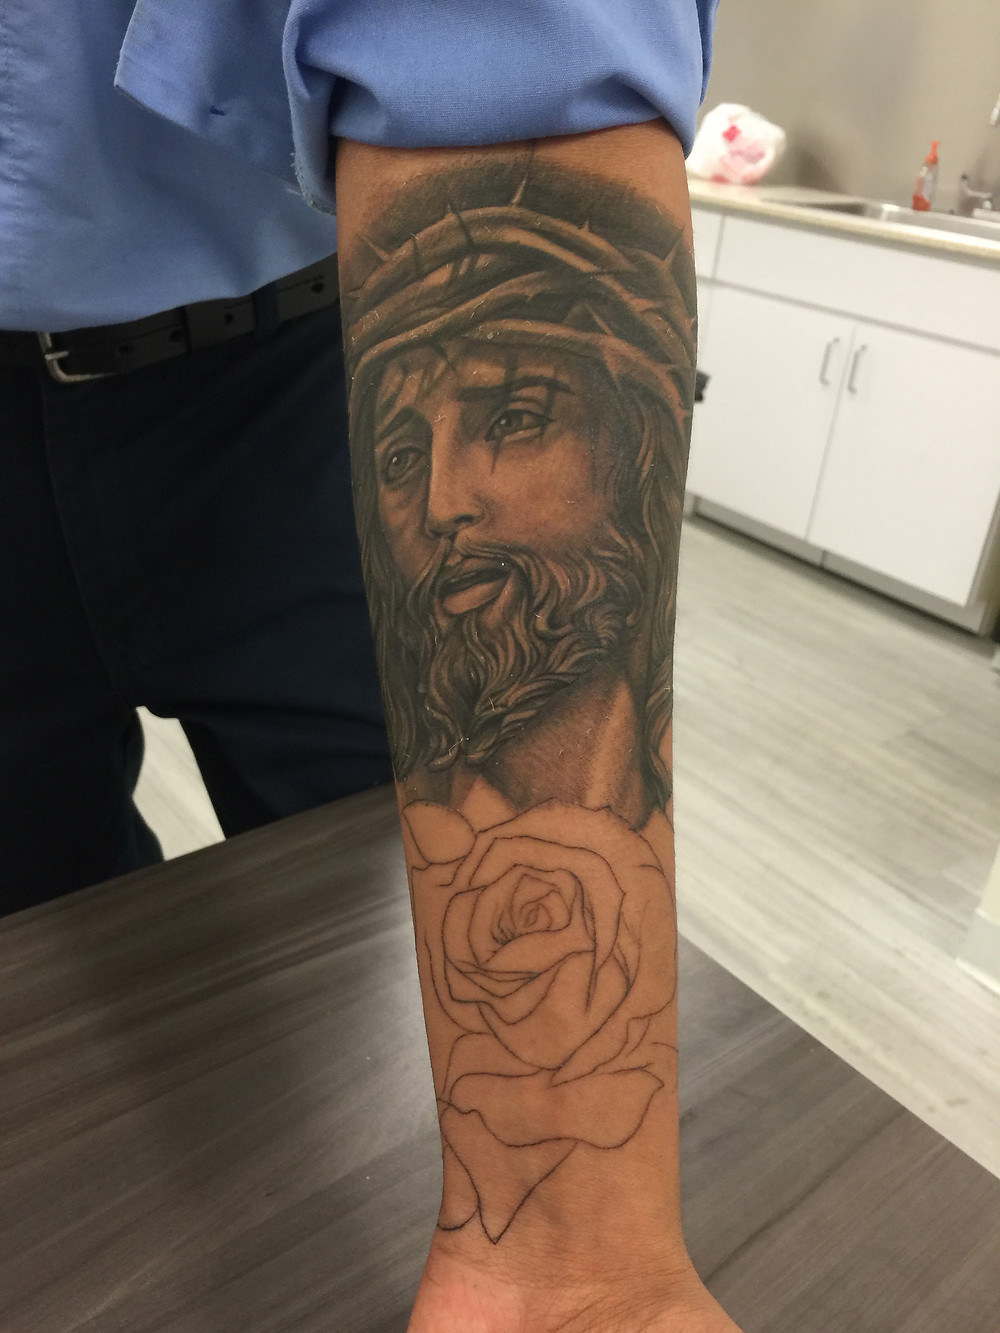 Tearful Jesus tat, with as yet unfinished rose